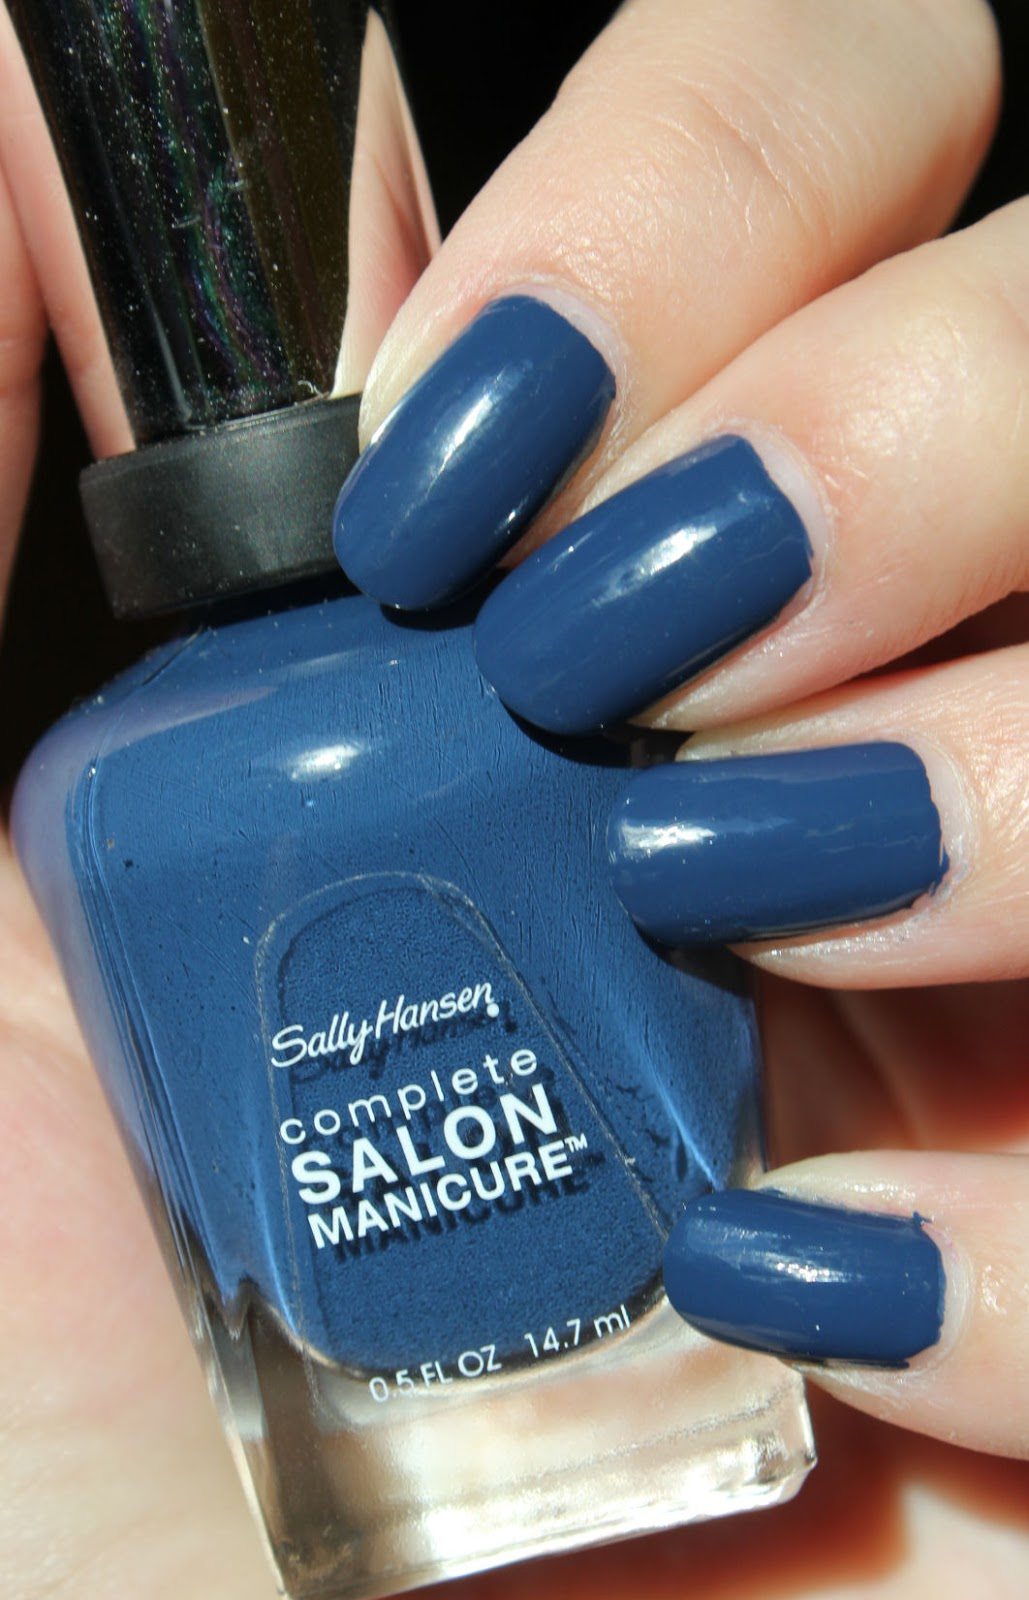 http://lacquediction.blogspot.de/2014/07/sally-hansen-902-blue-rose.html